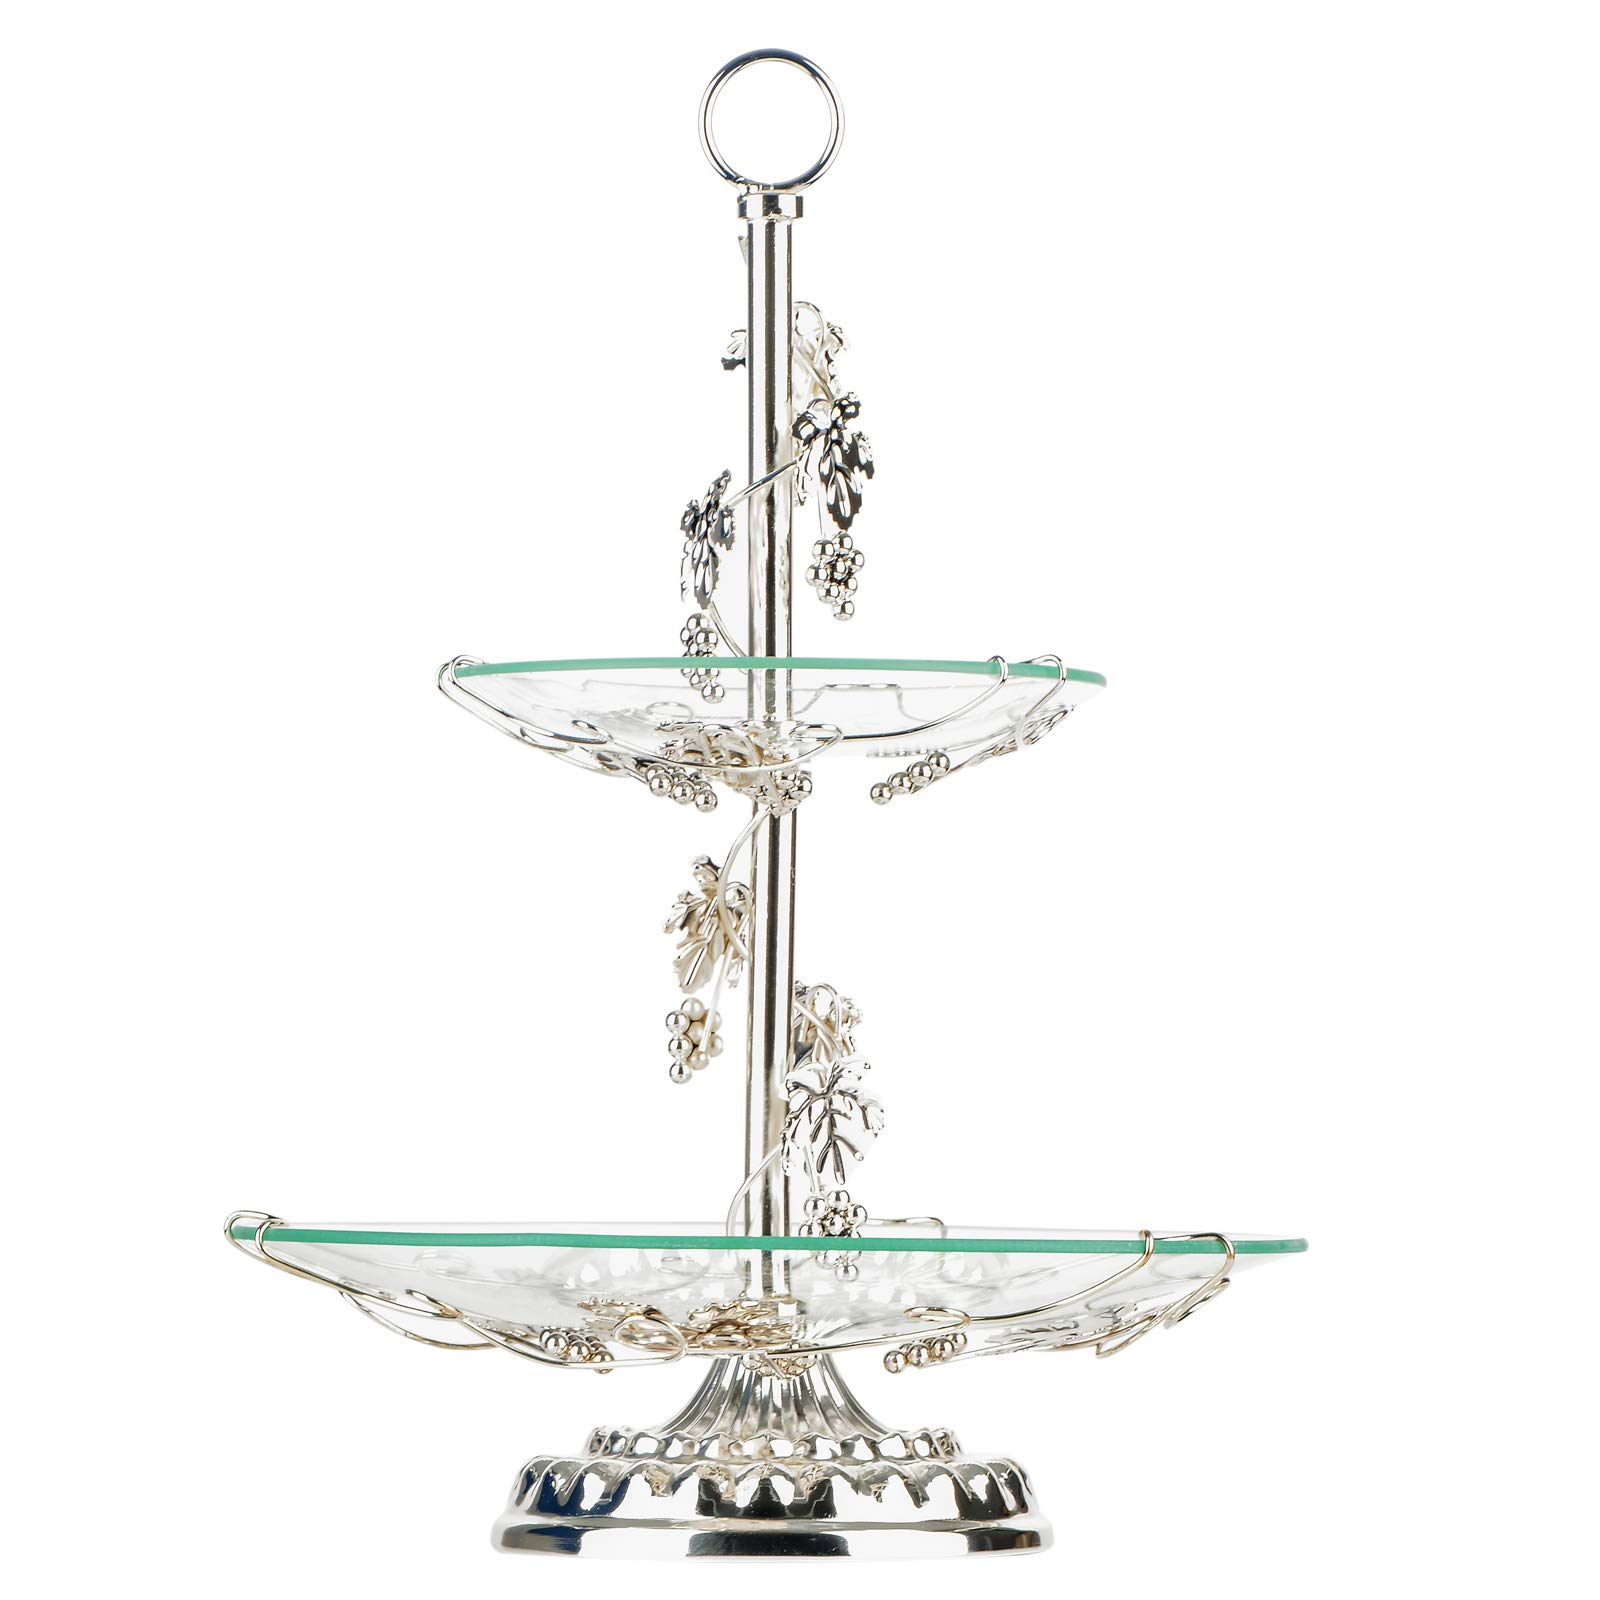 Fruit Bowl and Cake Stand,OKOMATCH 2 Tier Serving Platter With Round Glass Plate & Golden Stainless Steel Holder for Gift Giving/Birthday / Party/Wedding / Home(Silver)